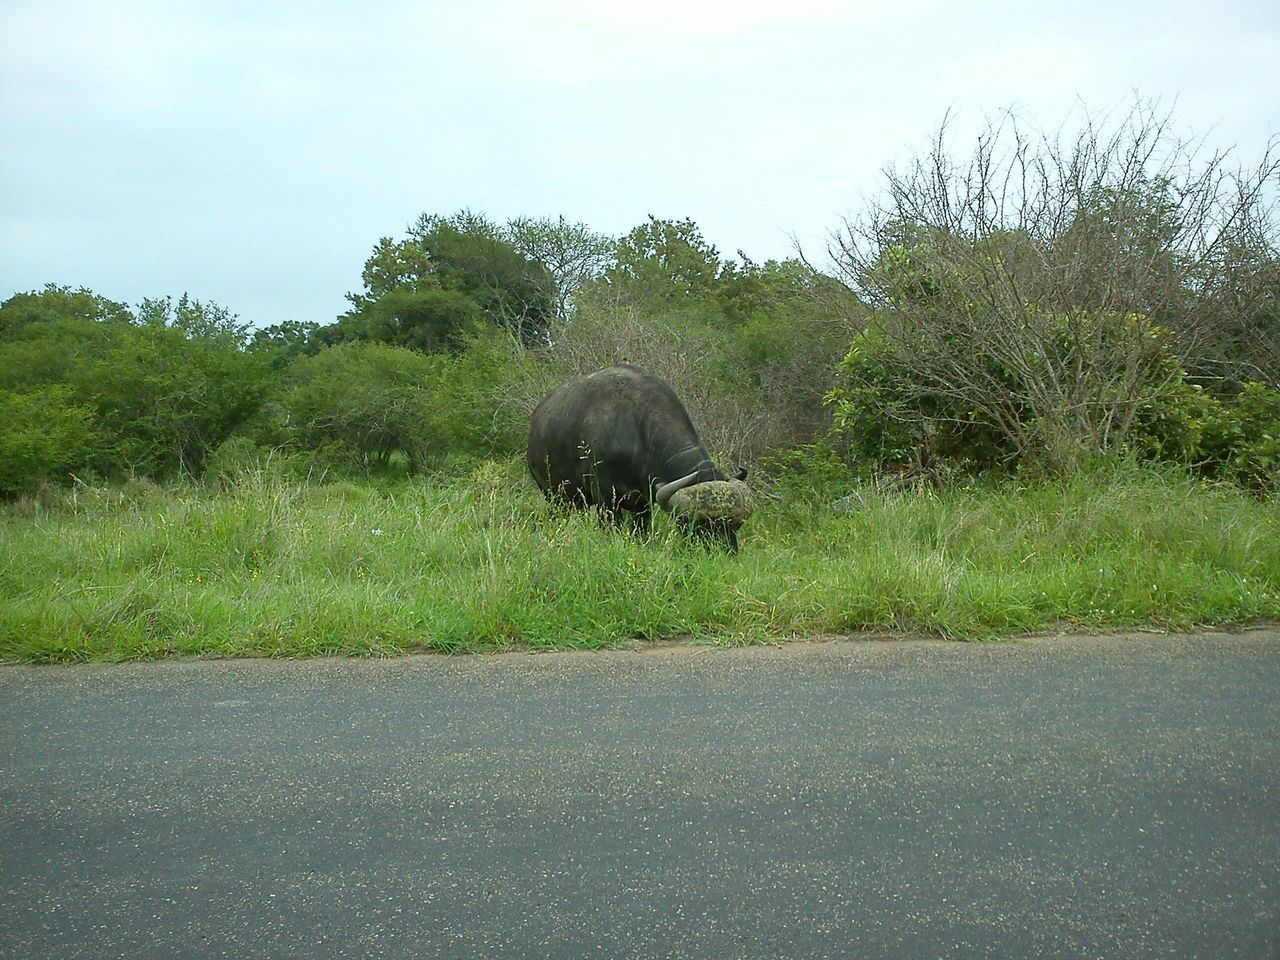 road, animal themes, one animal, mammal, grass, nature, tree, animals in the wild, no people, day, outdoors, growth, sky, domestic animals, safari animals, beauty in nature